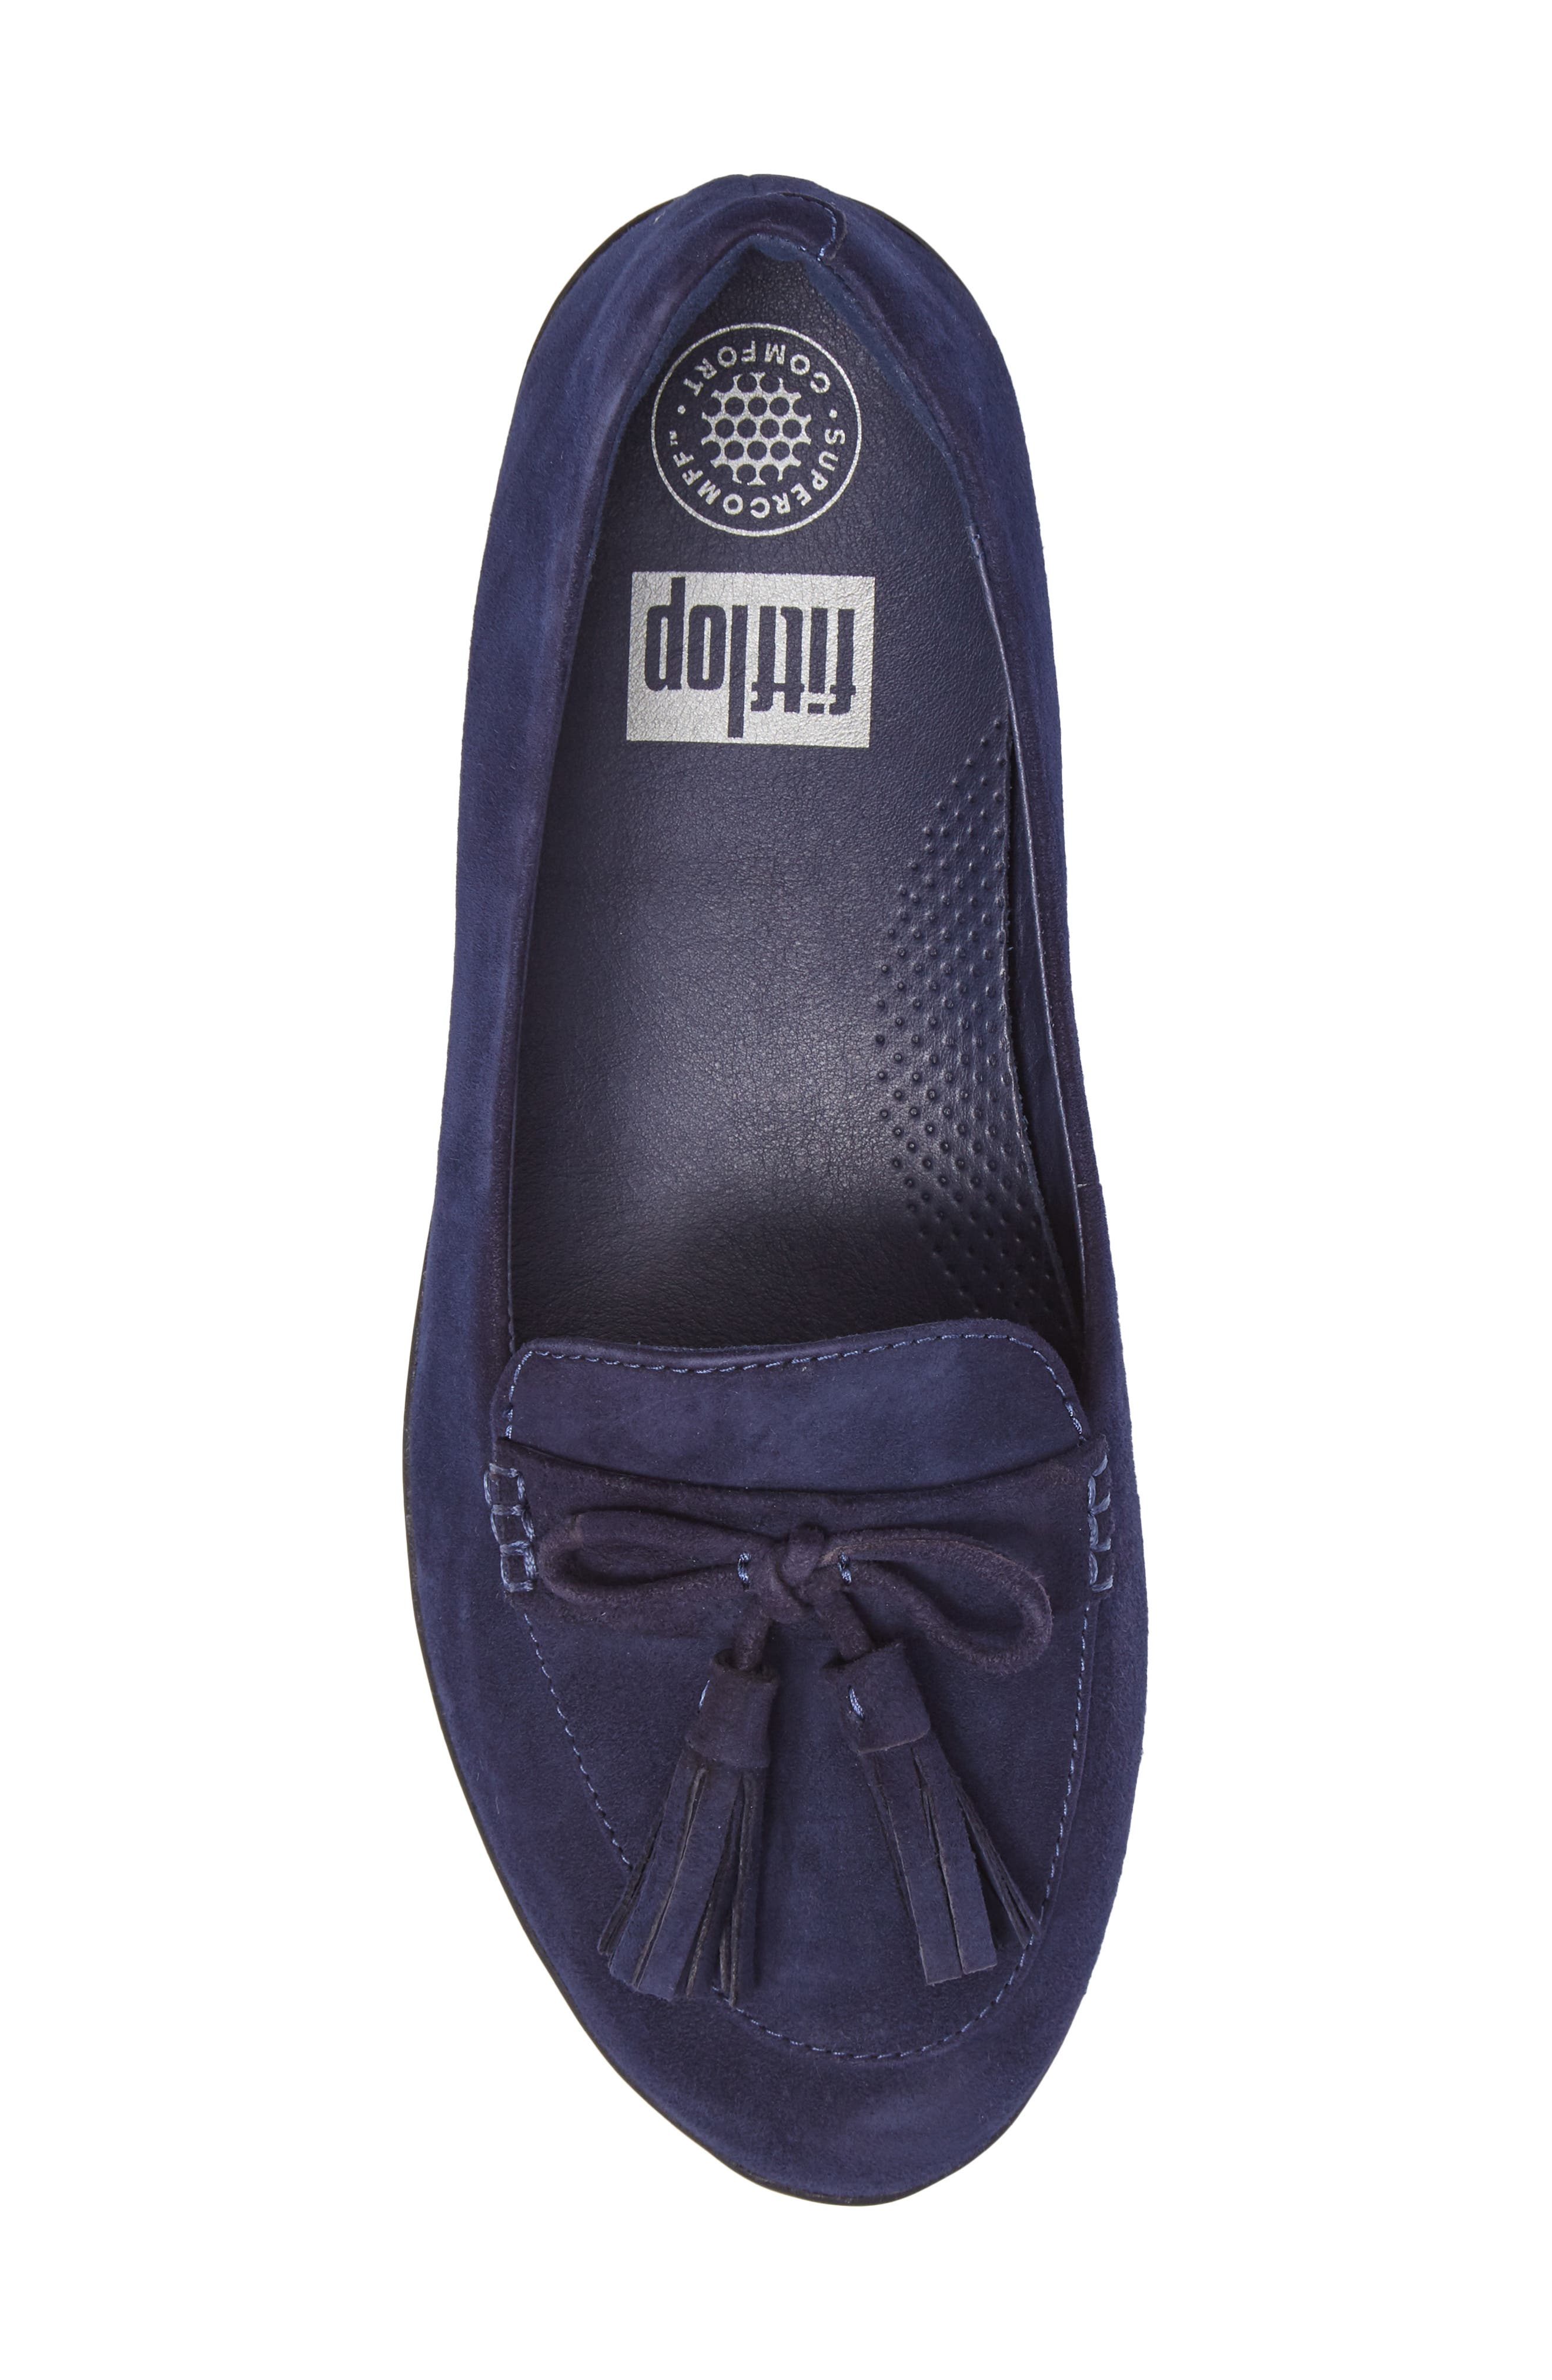 Tassel Bow Sneakerloafer<sup>™</sup> Water Repellent Flat,                             Alternate thumbnail 19, color,